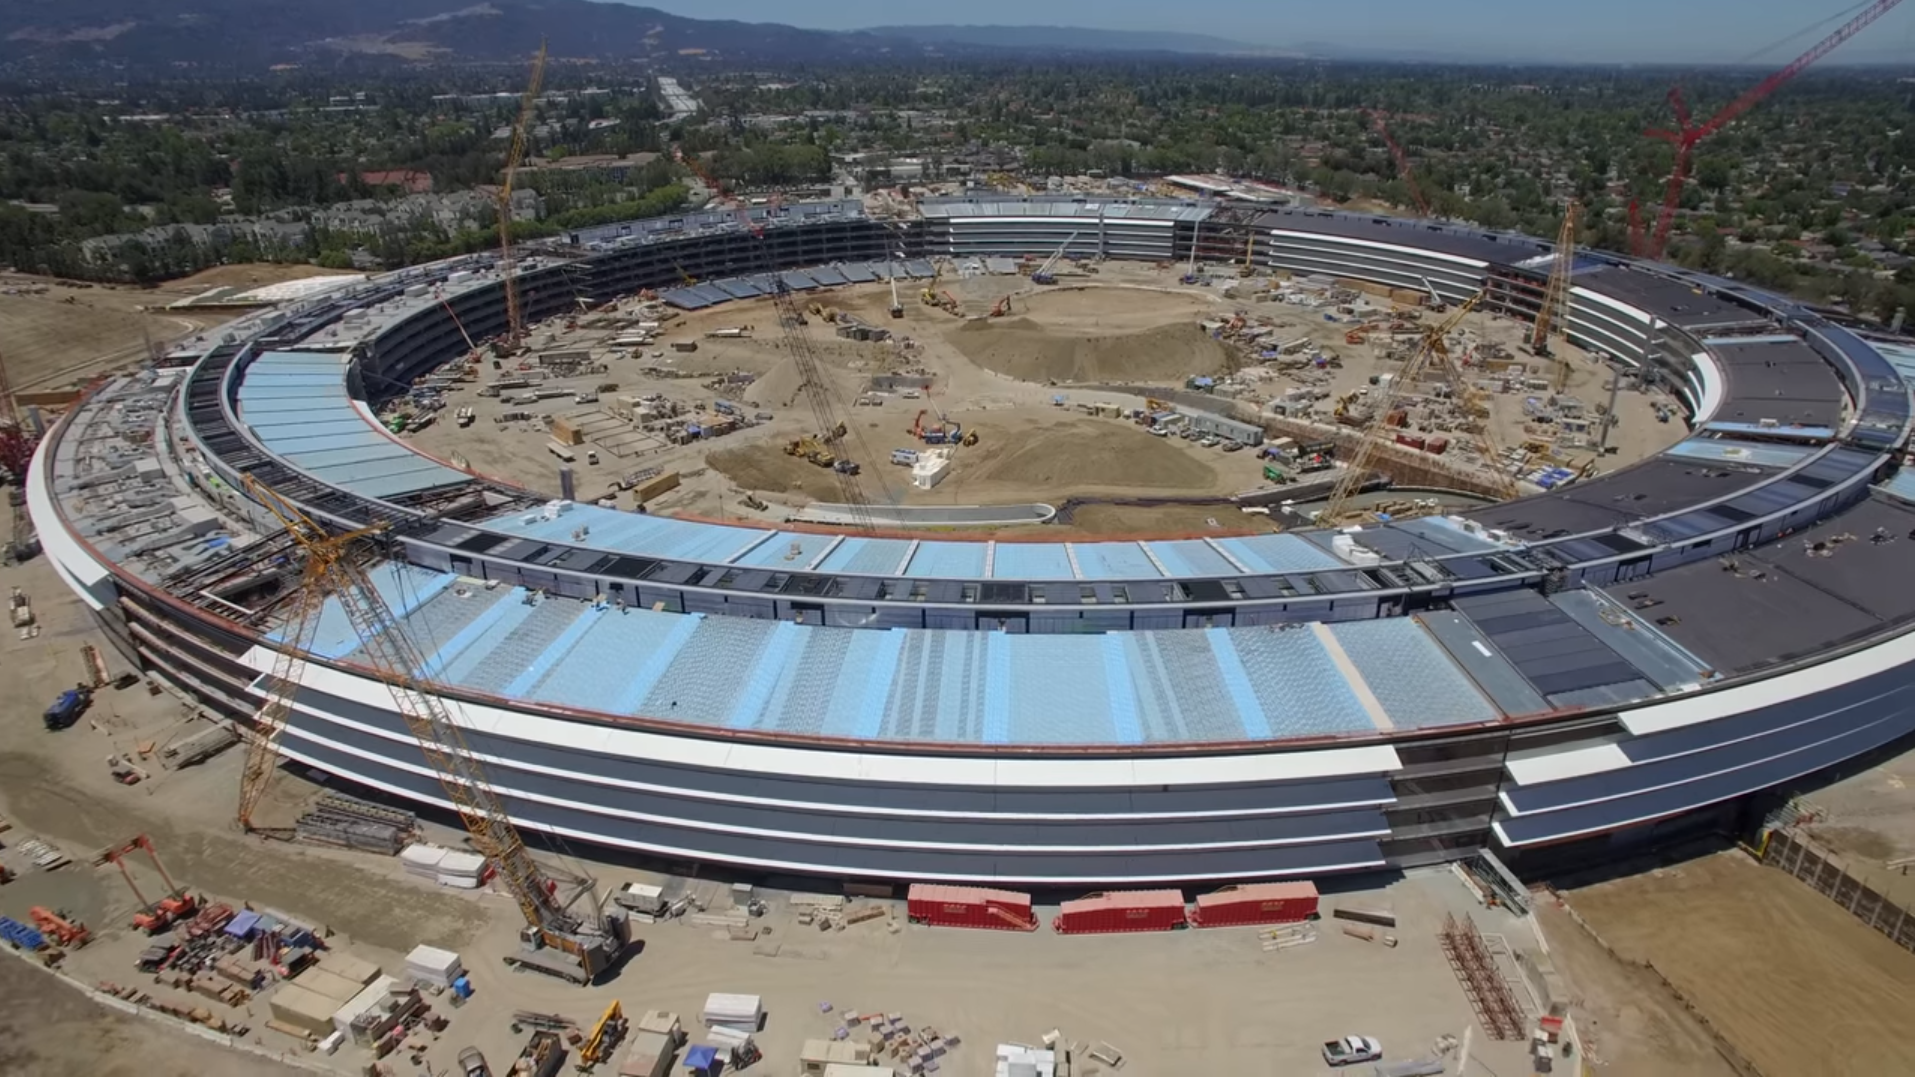 Apple Campus 2 drone footage shows construction progress